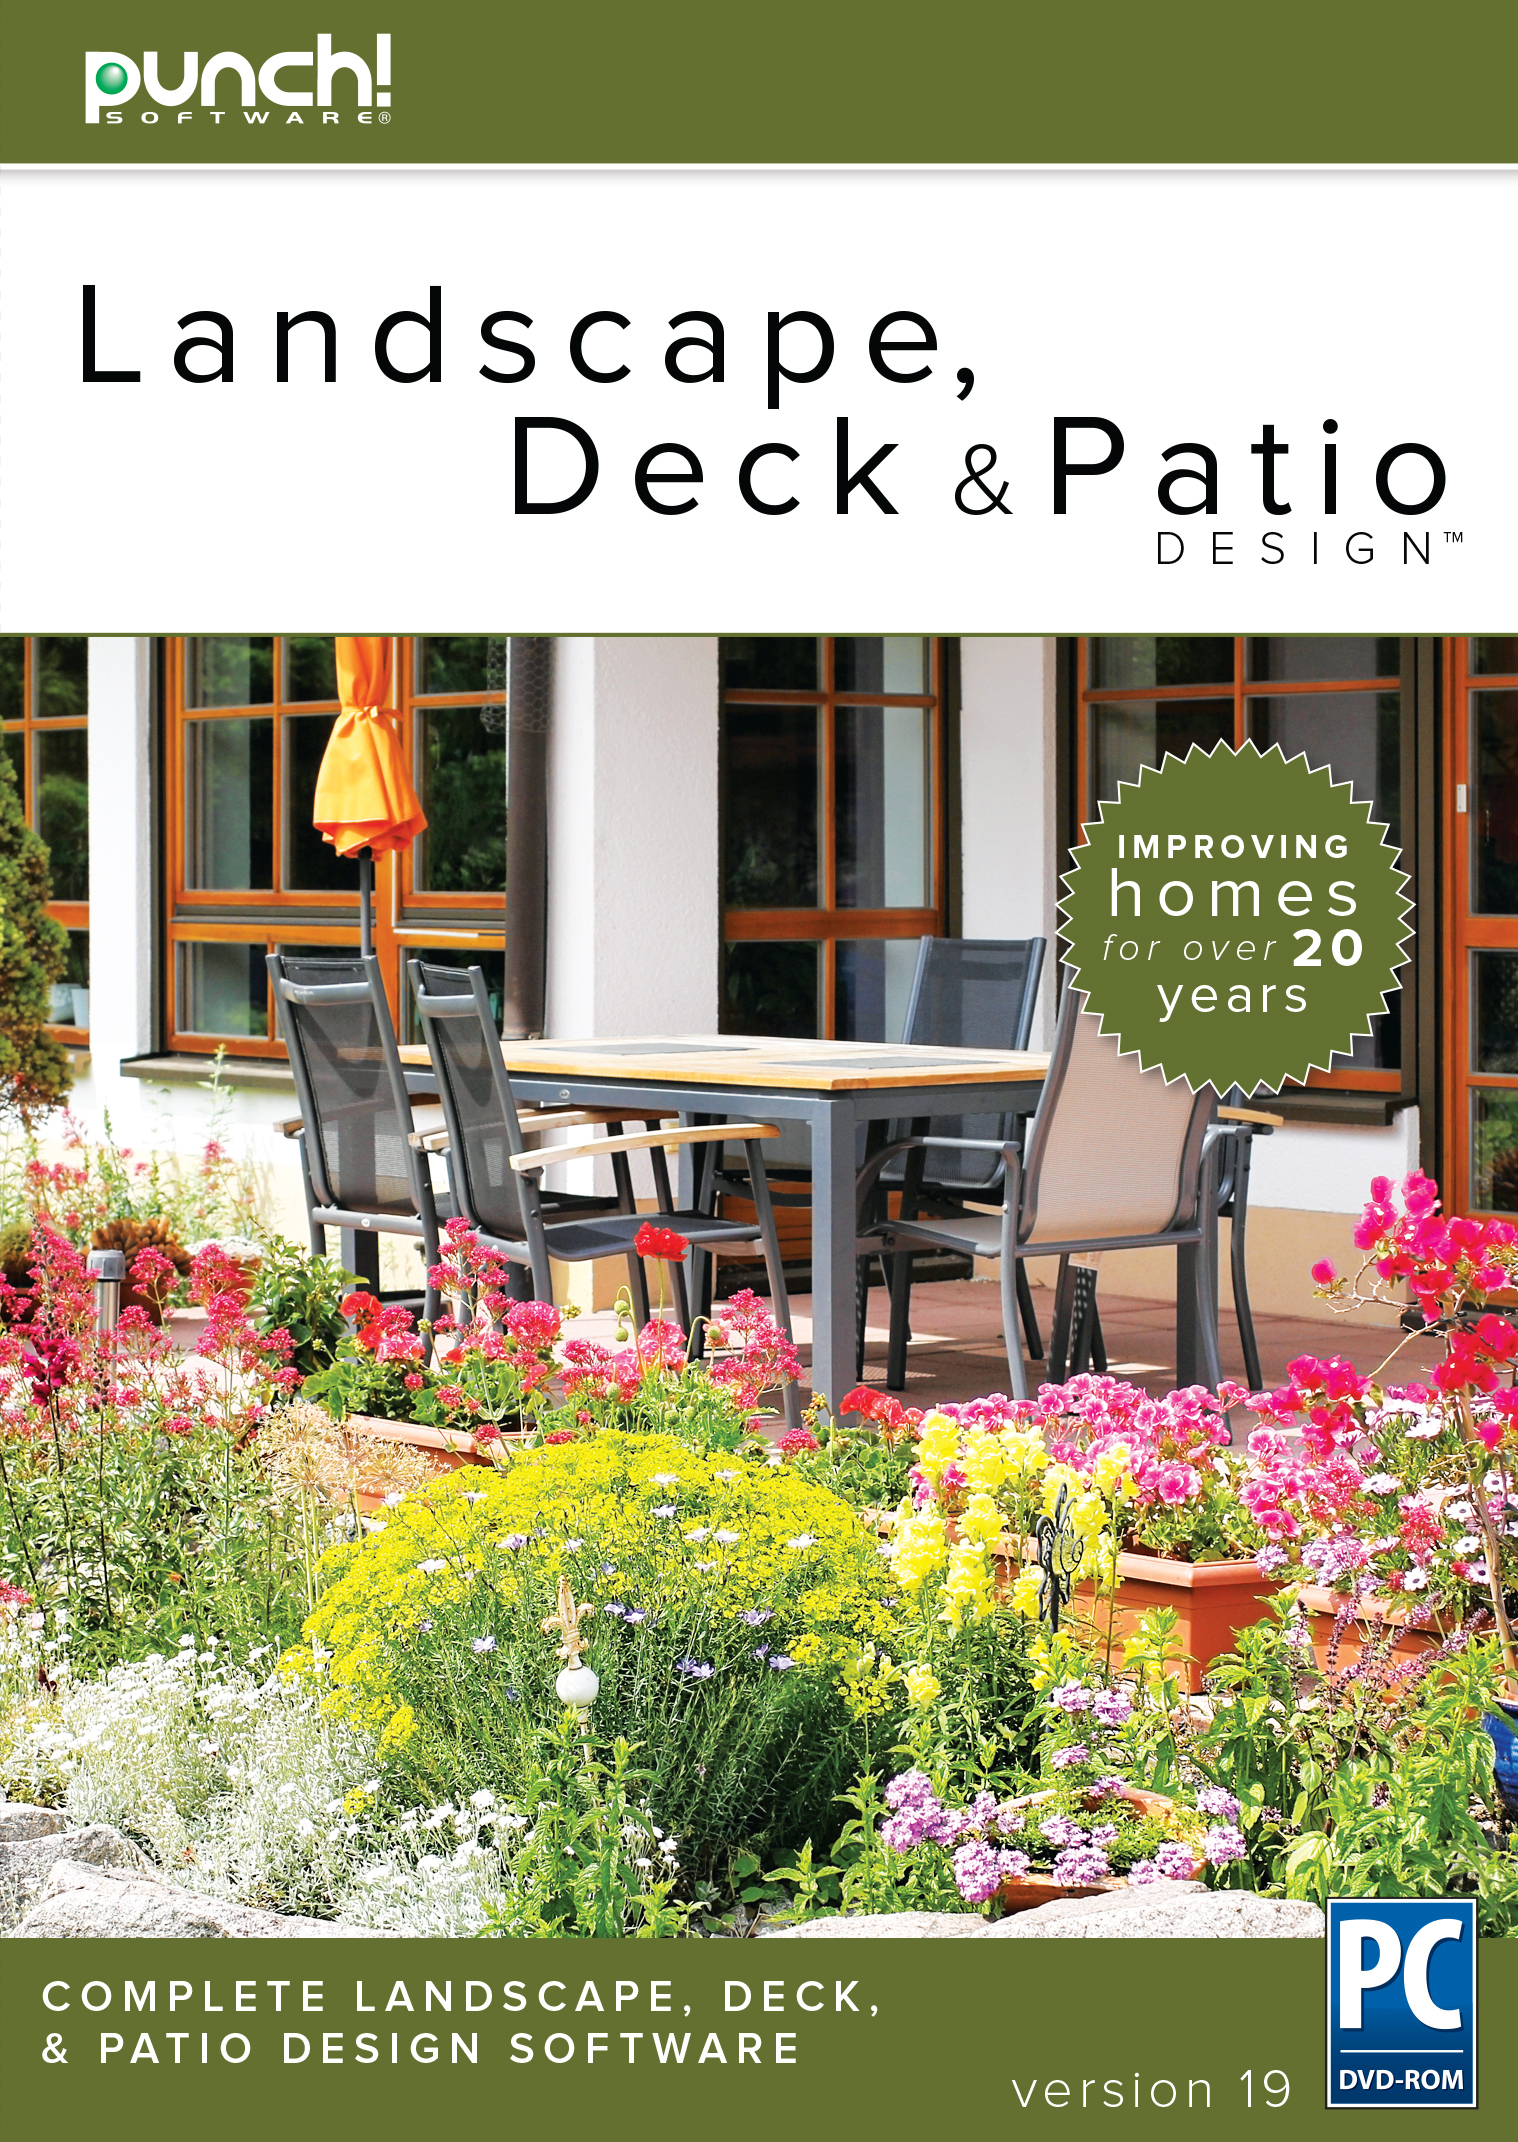 Punch! Landscape, Deck and Patio Design v19 for Windows  PC (Punch Design Software)